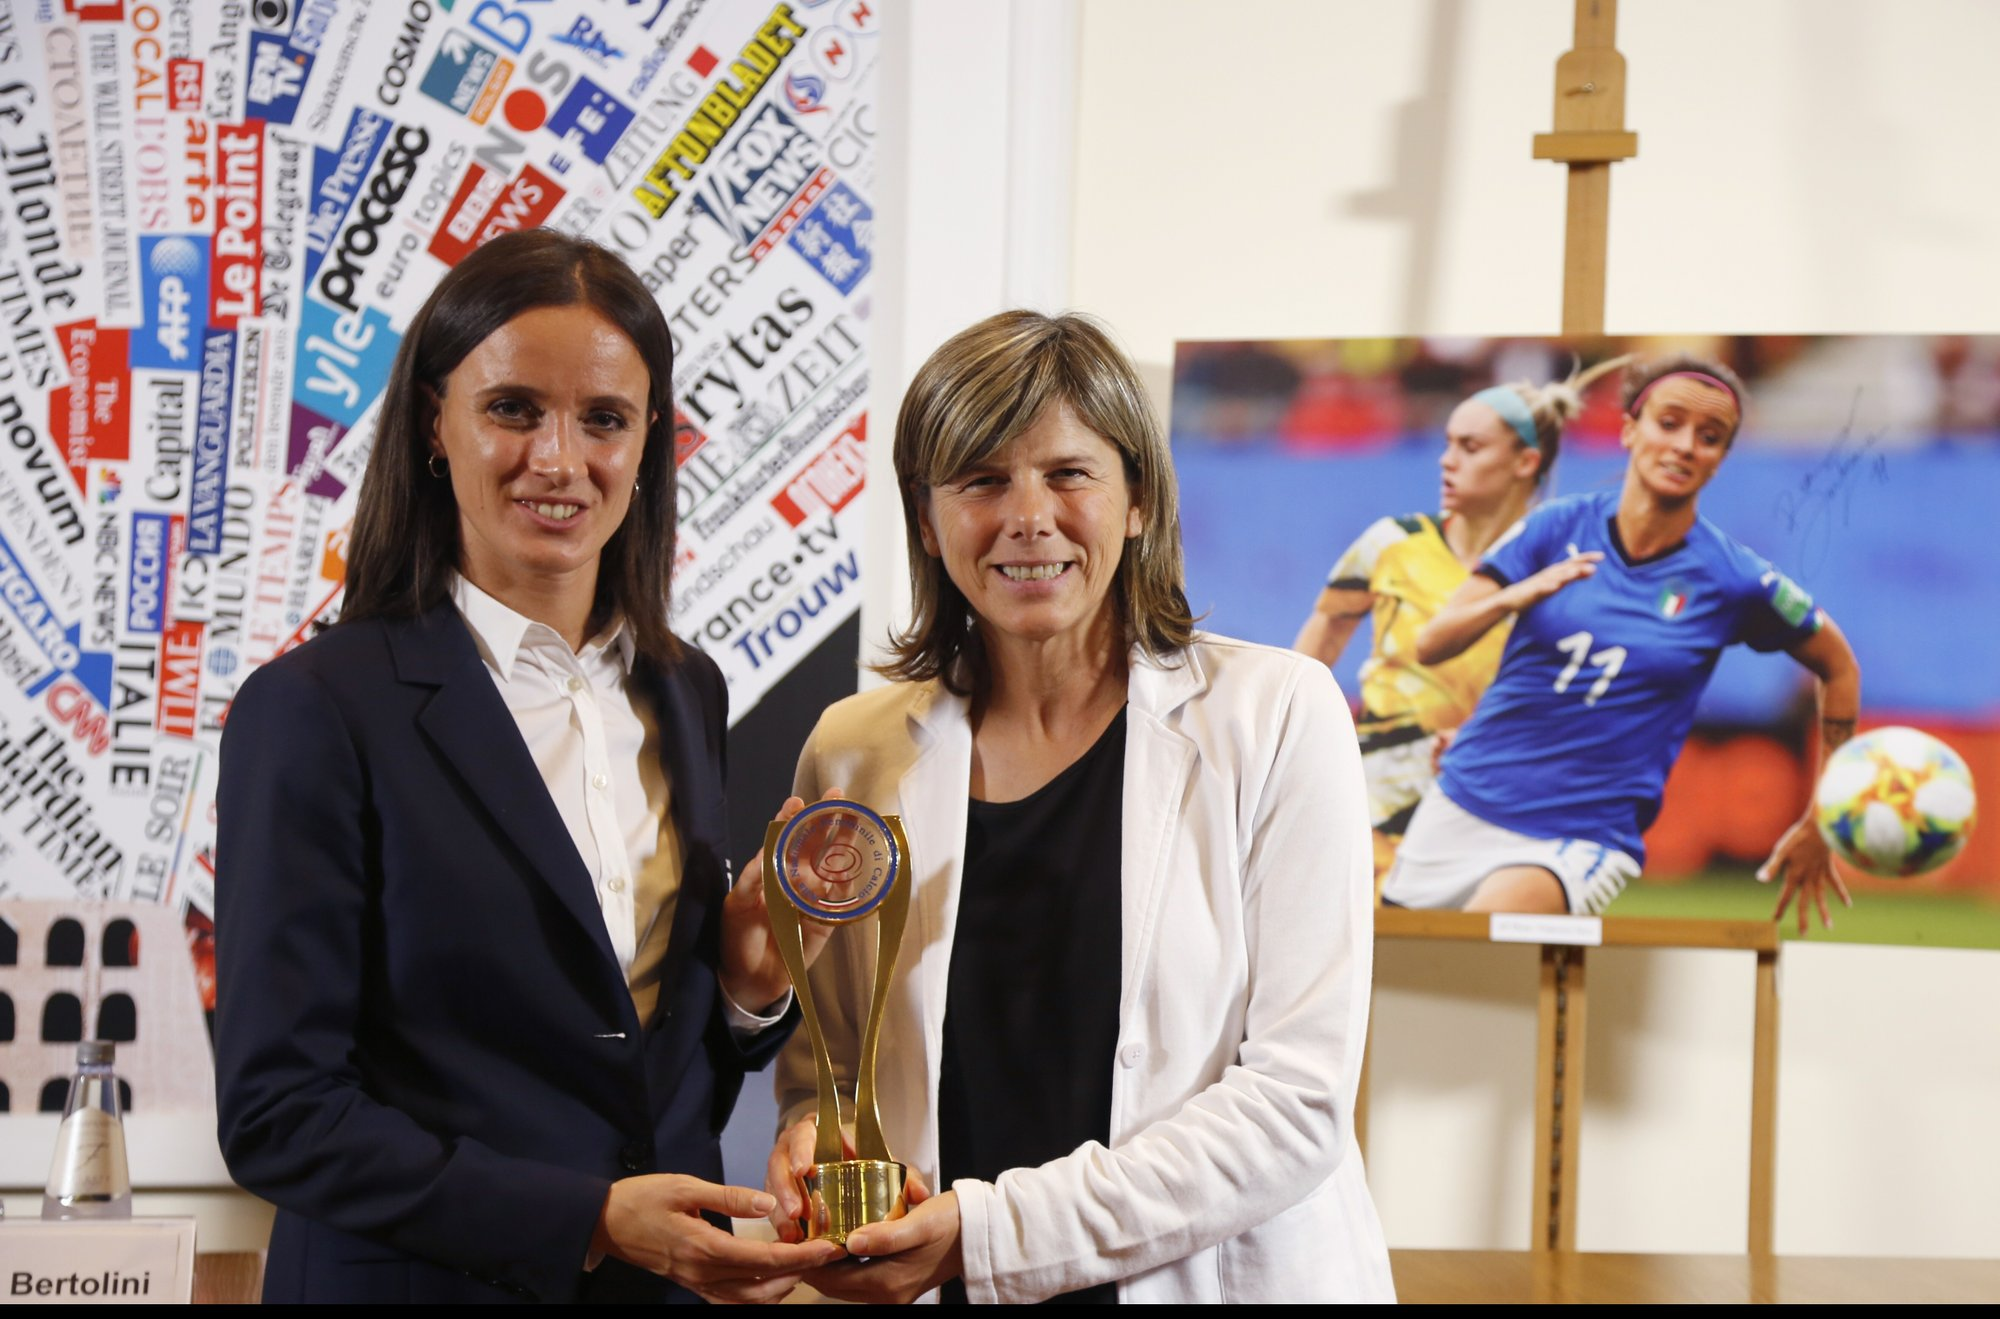 Italy women's team awarded for 'emancipating' female game